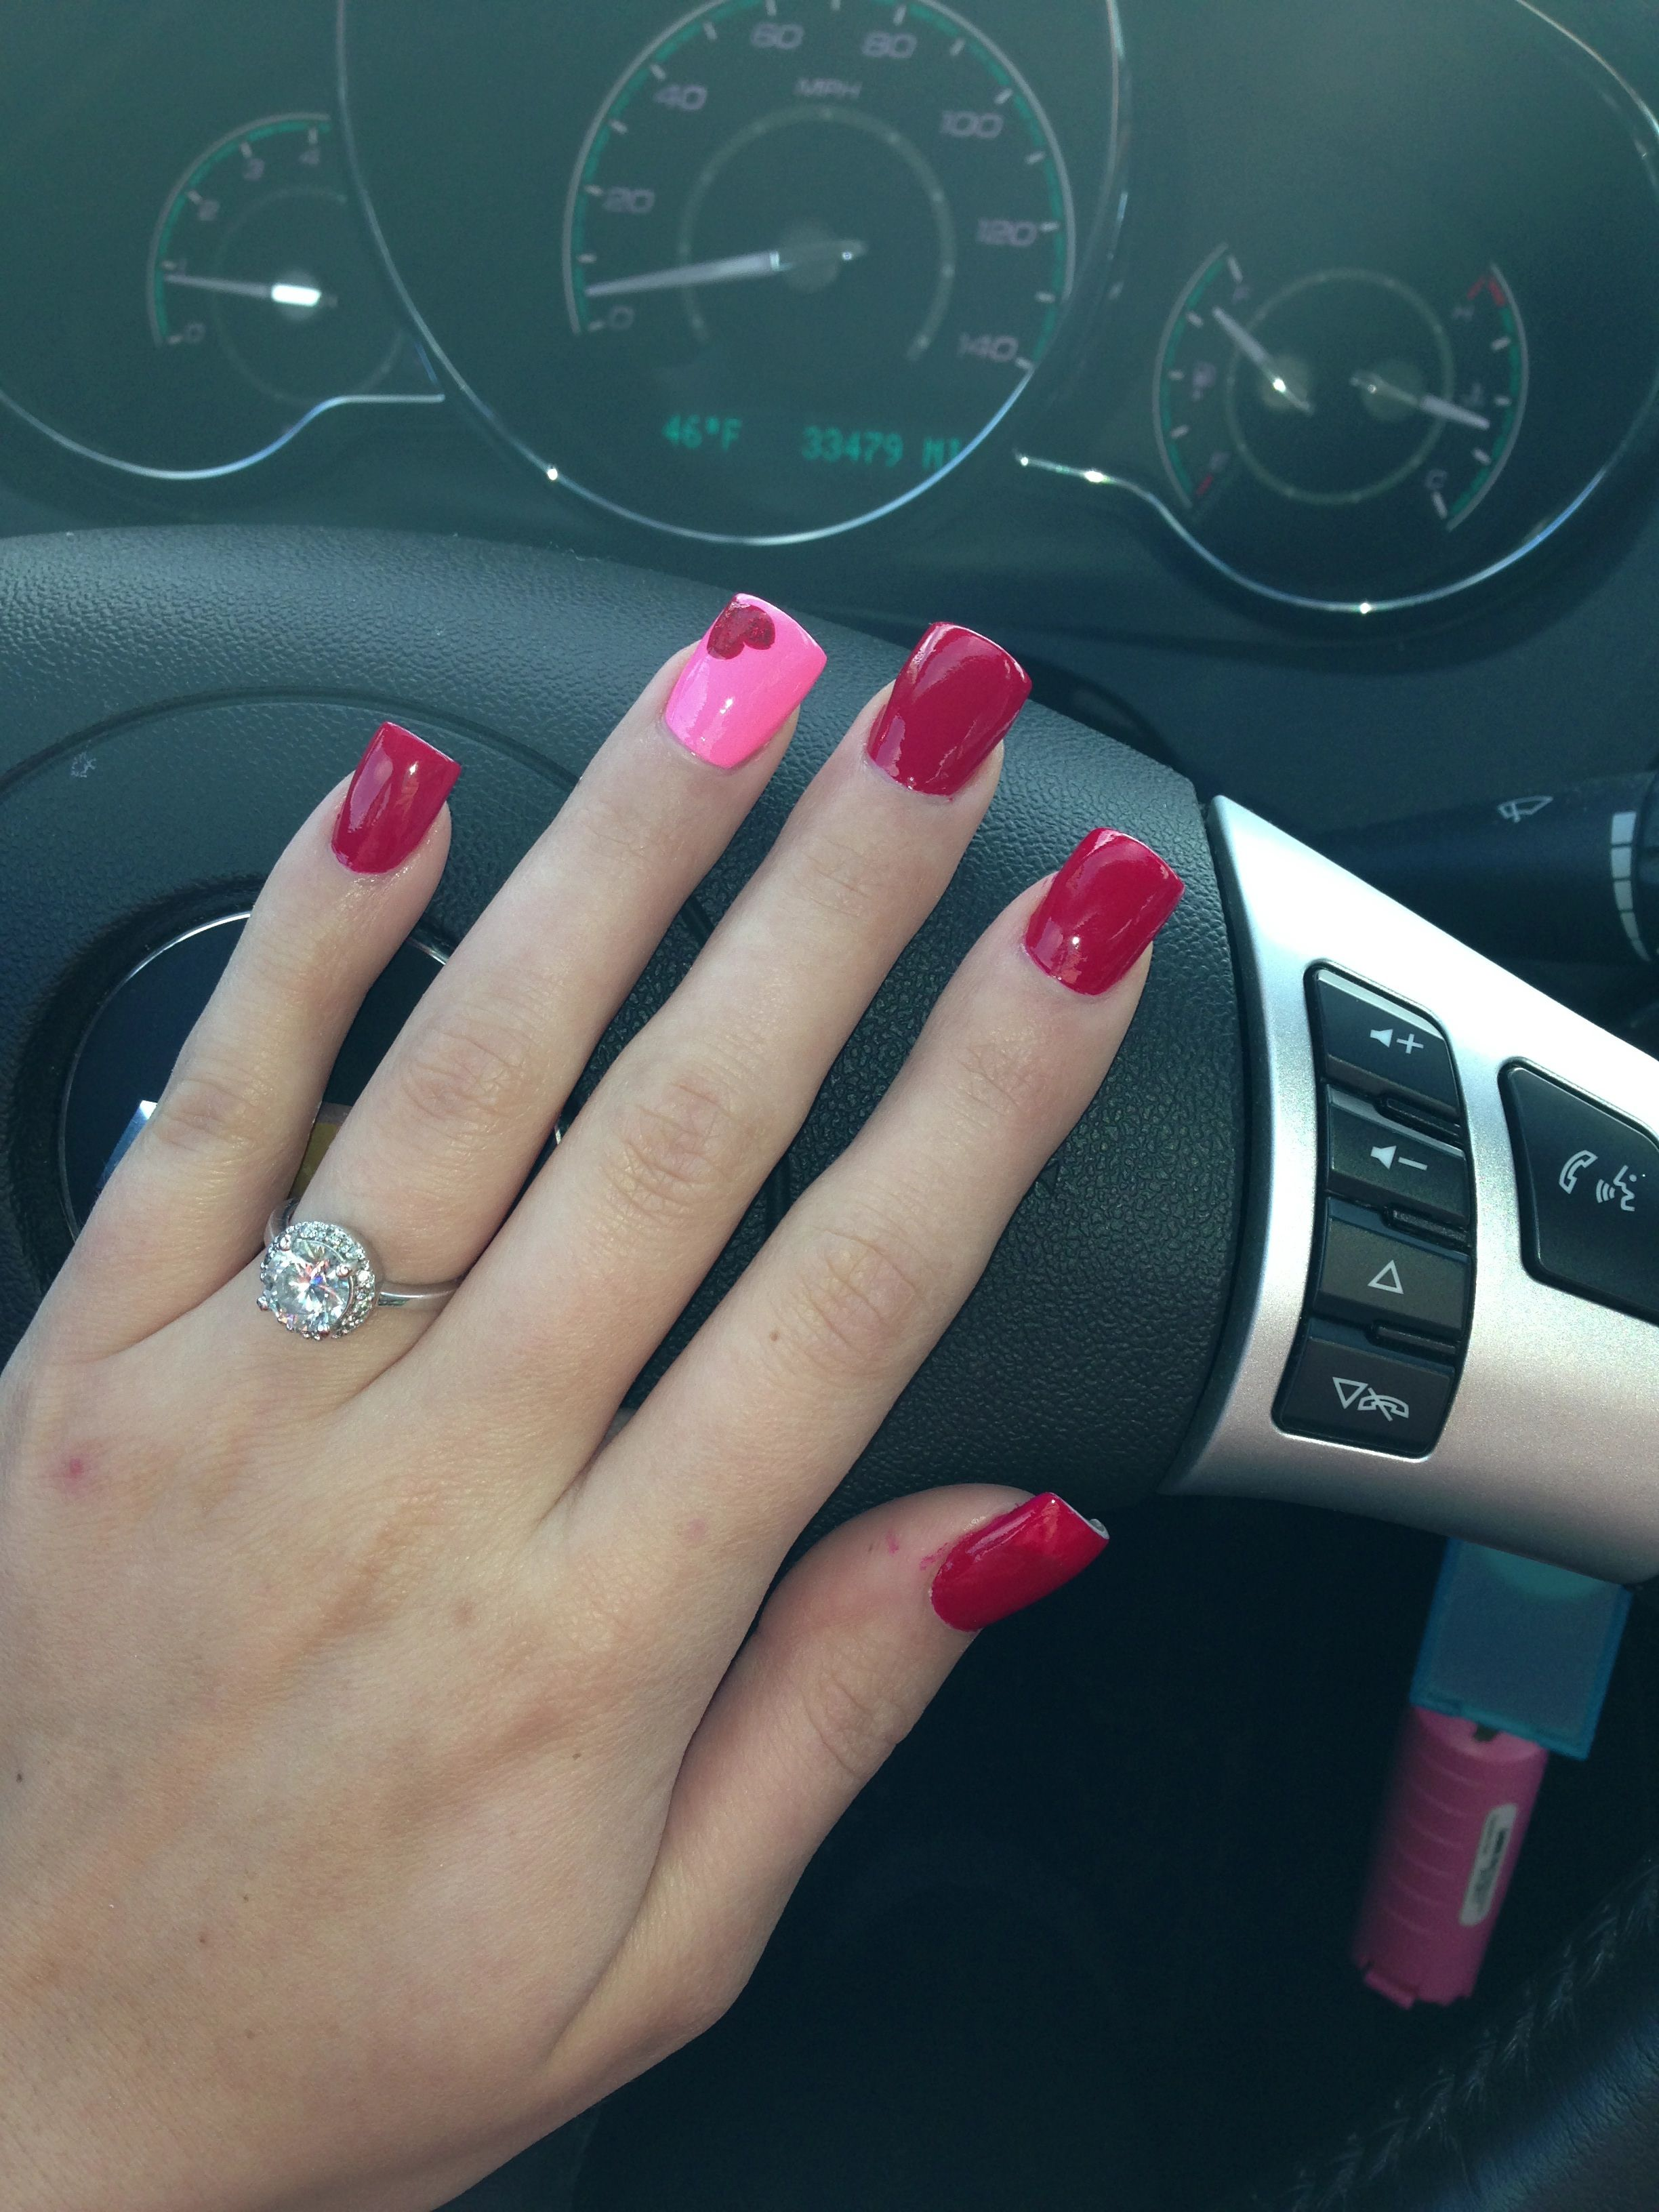 40 Best Nail Polish Designs To Try In 2017 | Ring finger ...